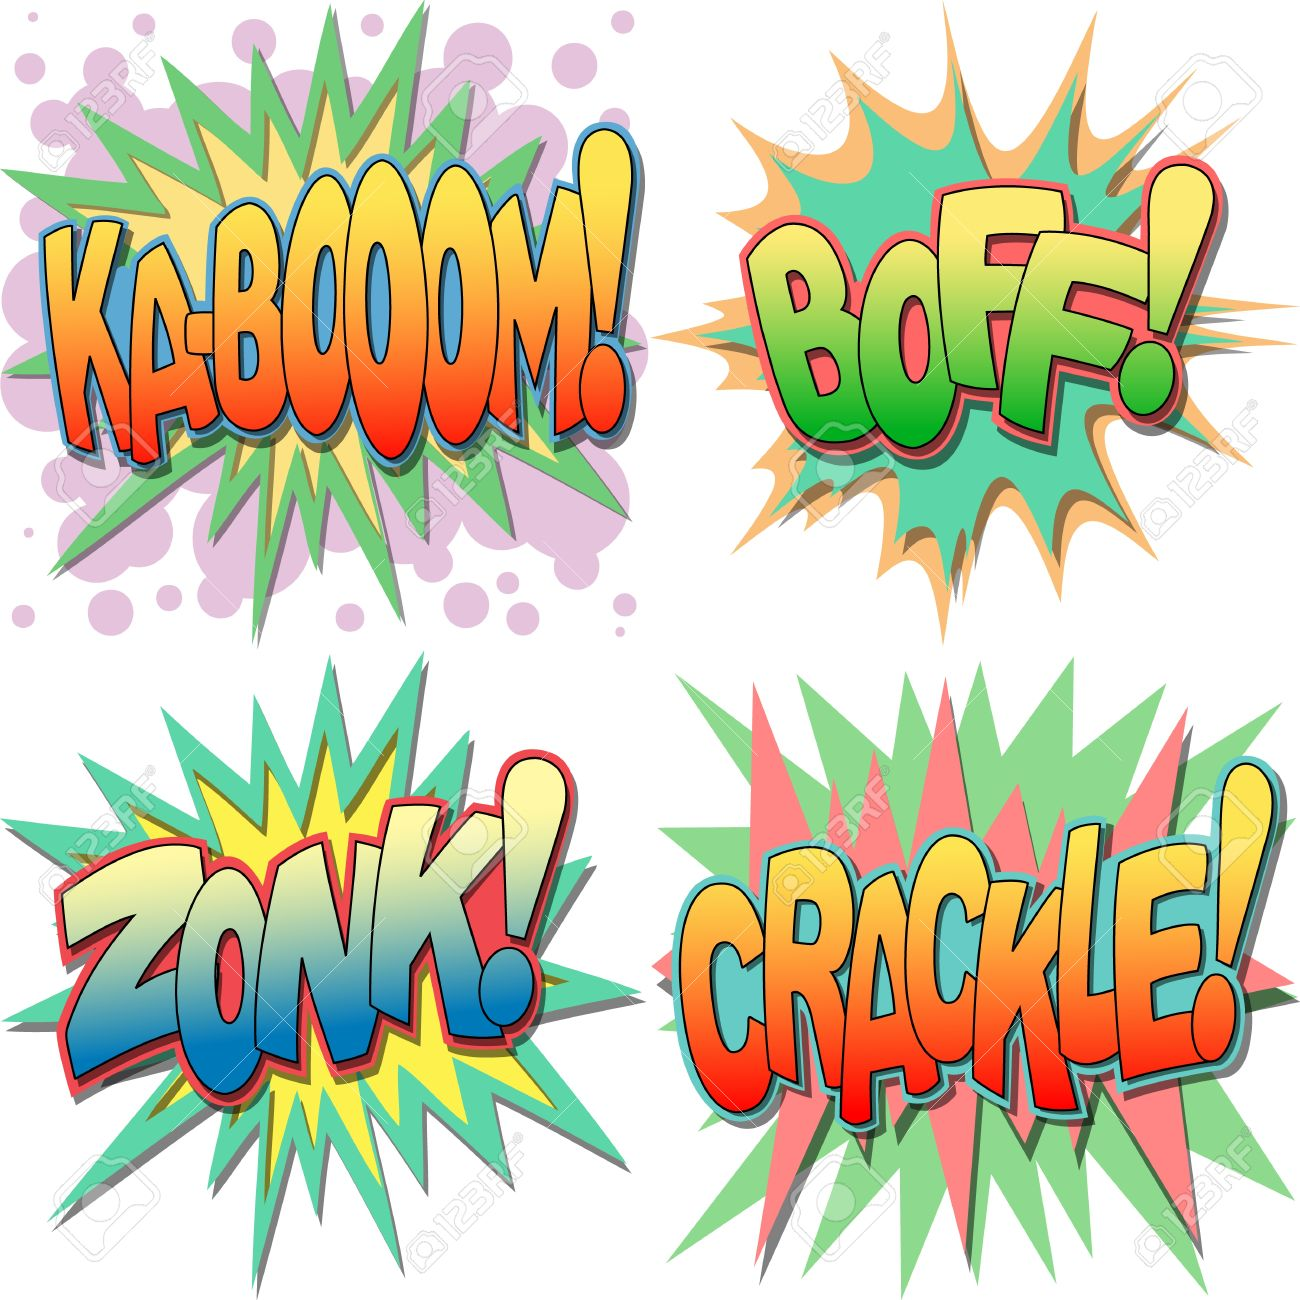 A Selection Of Comic Book Exclamations And Action Words, Kaboom.